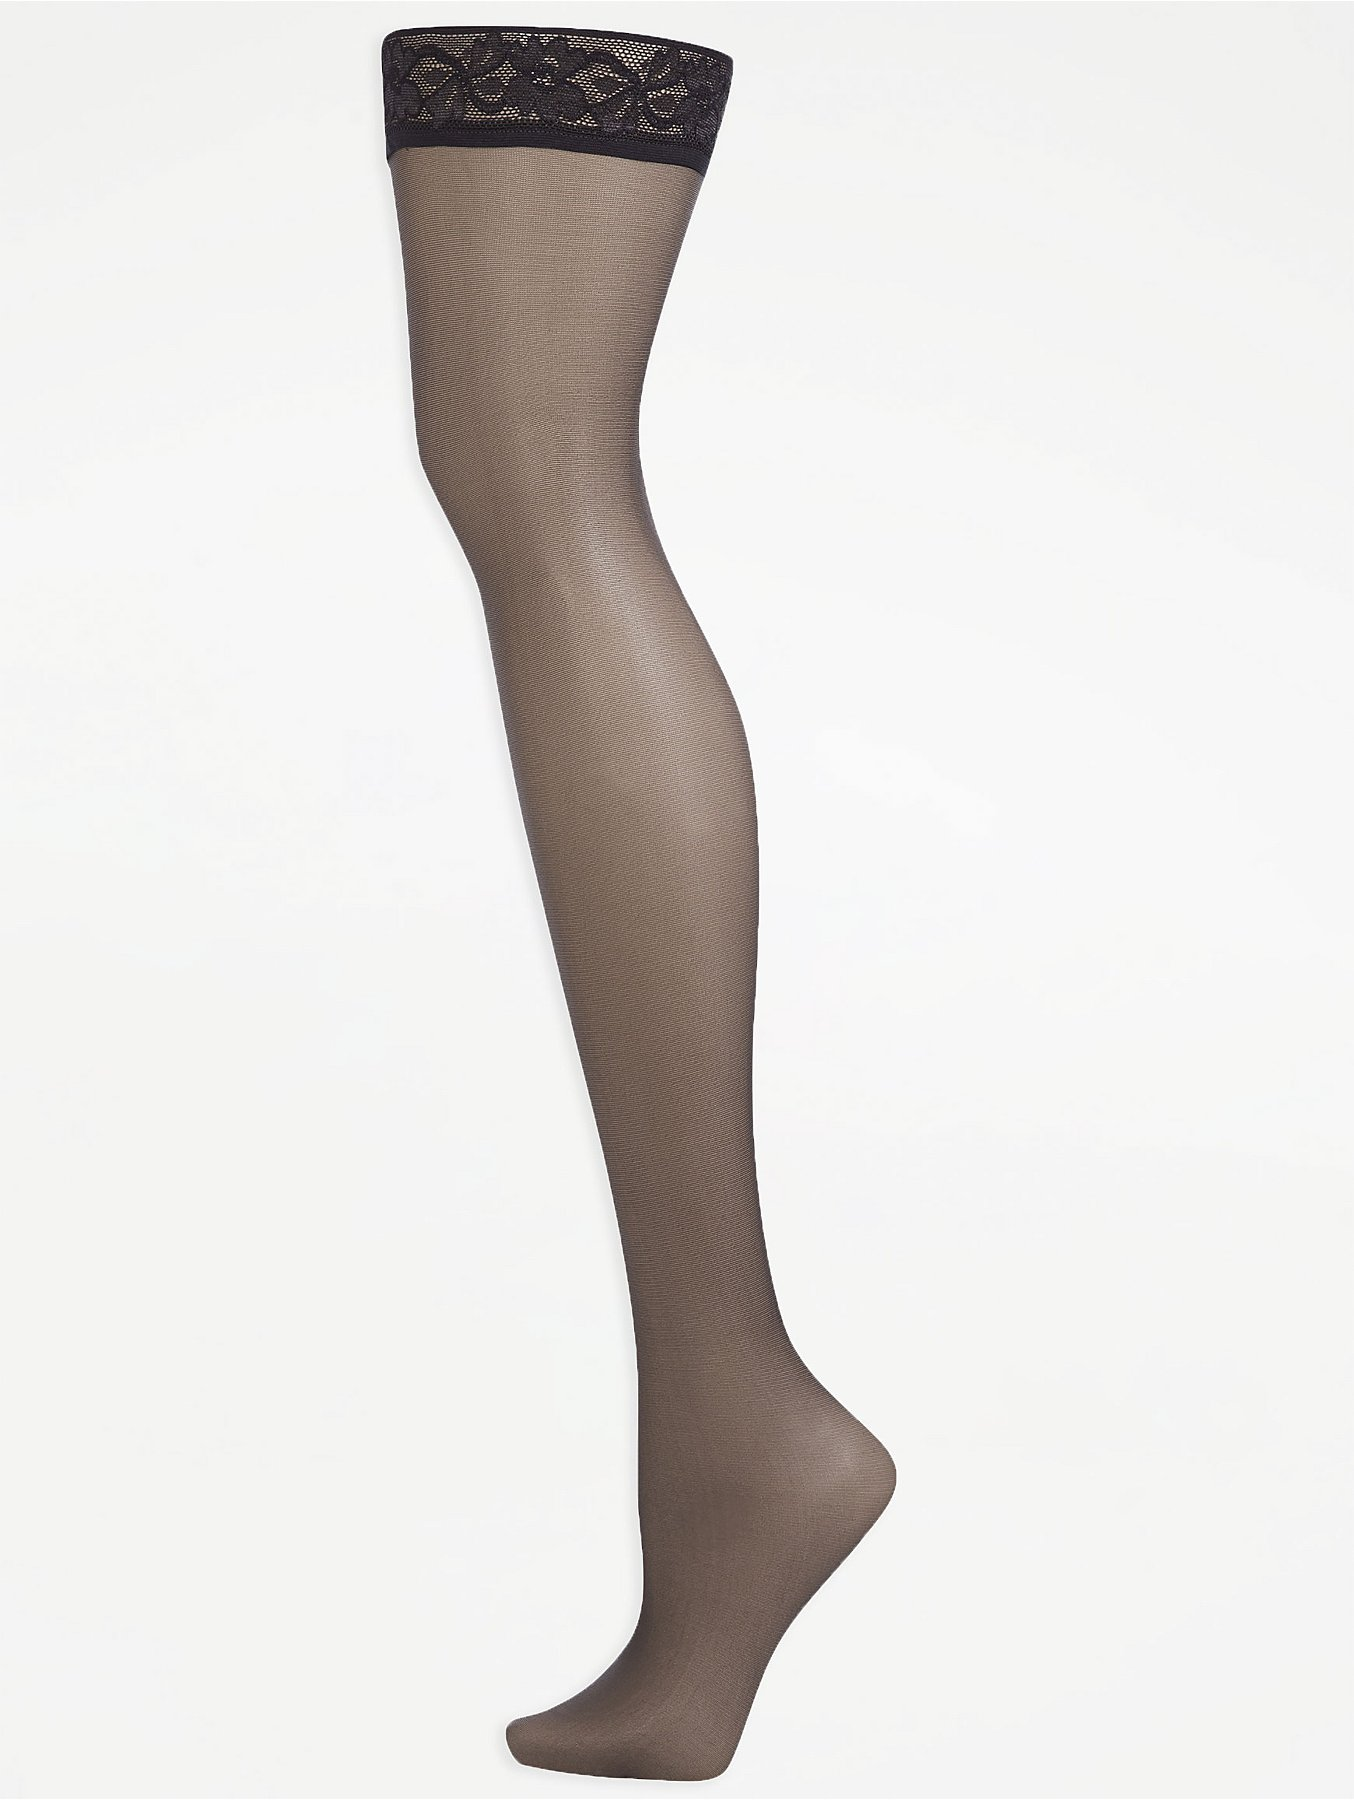 504d9cdacd6 Barely Black 10 Denier Sheen Hold Up Tights 2 Pack